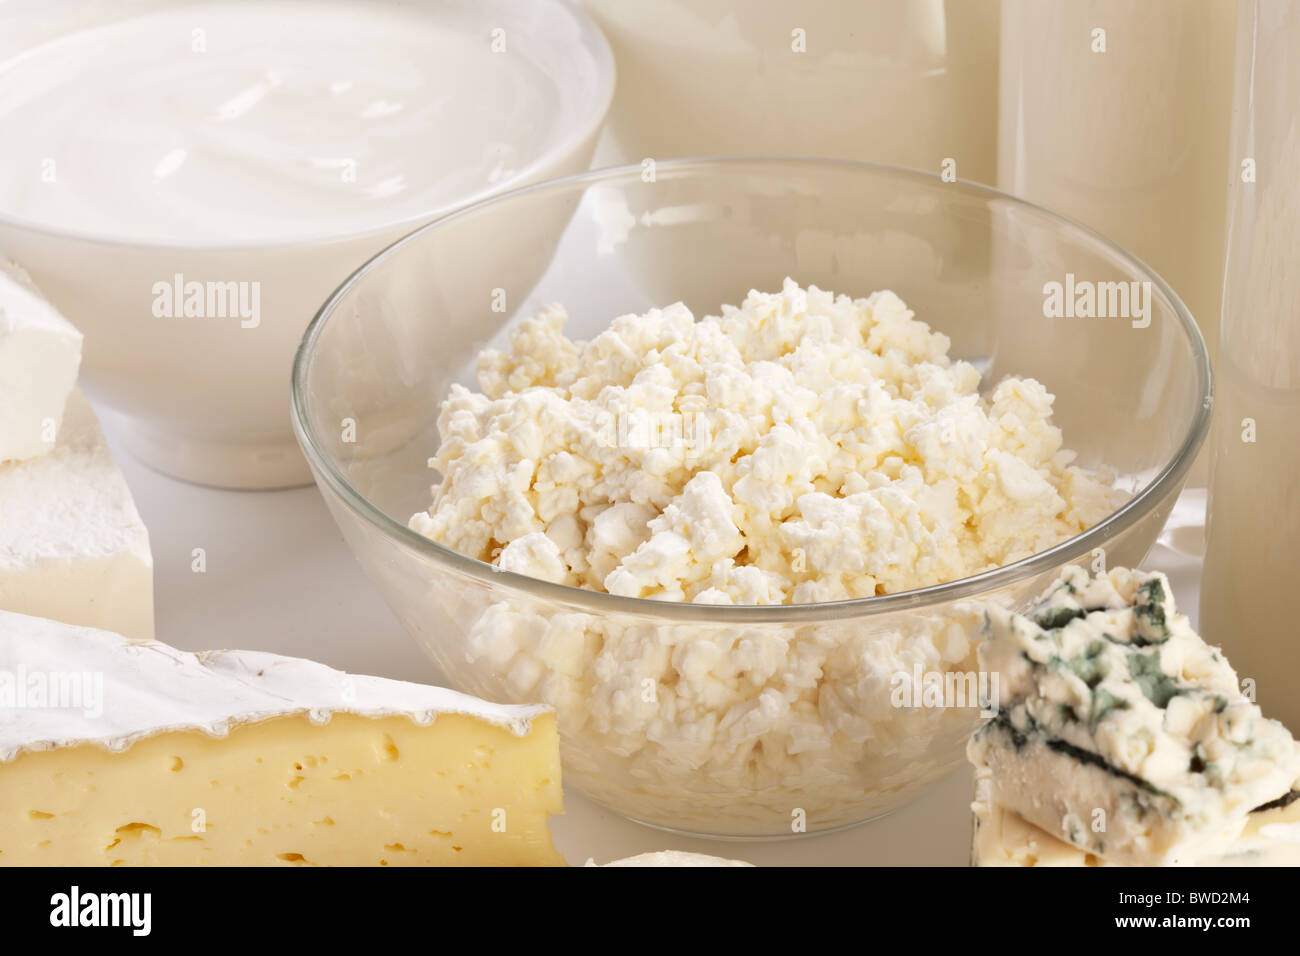 Different milk products: cheese; cream; milk. On a white background. Stock Photo